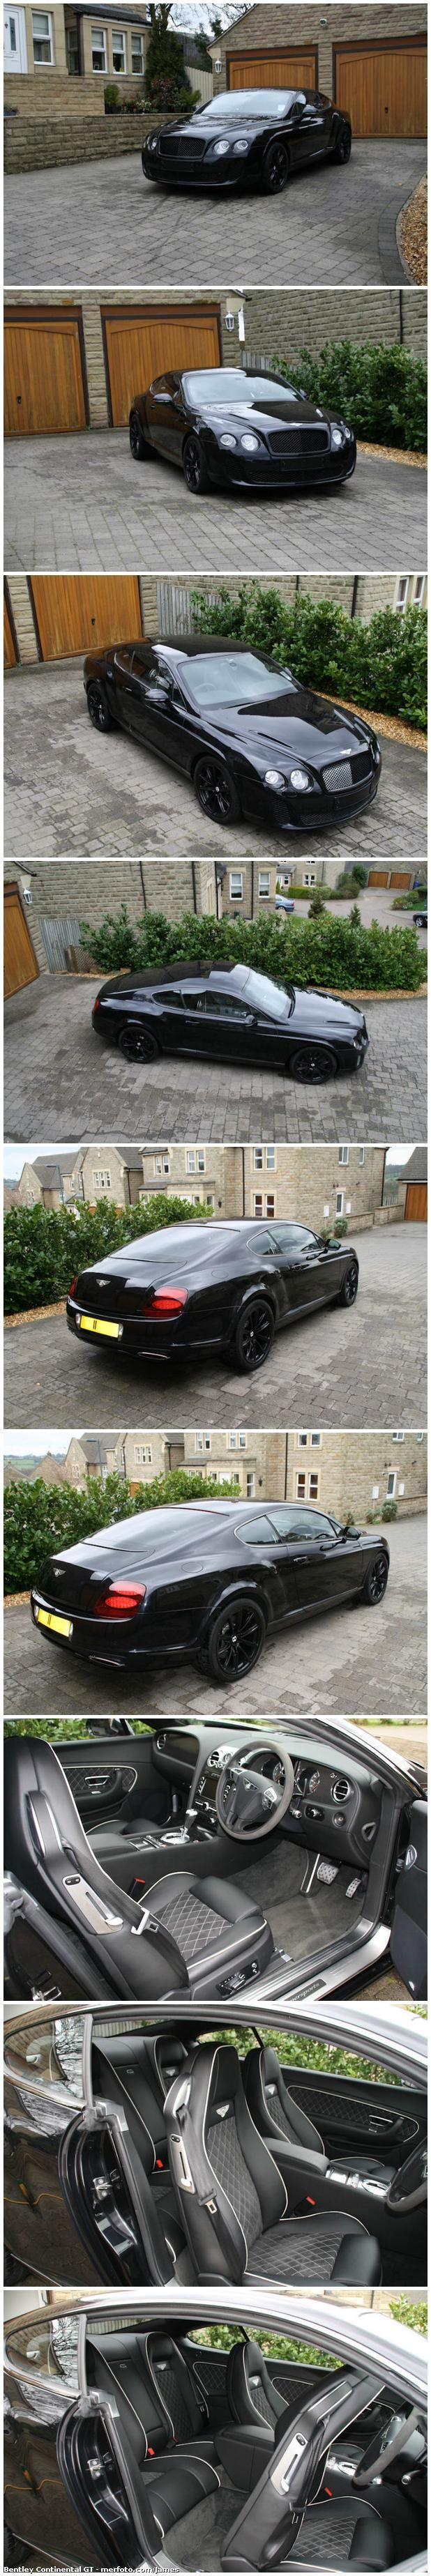 My dream car.... the Bentley Continental GT